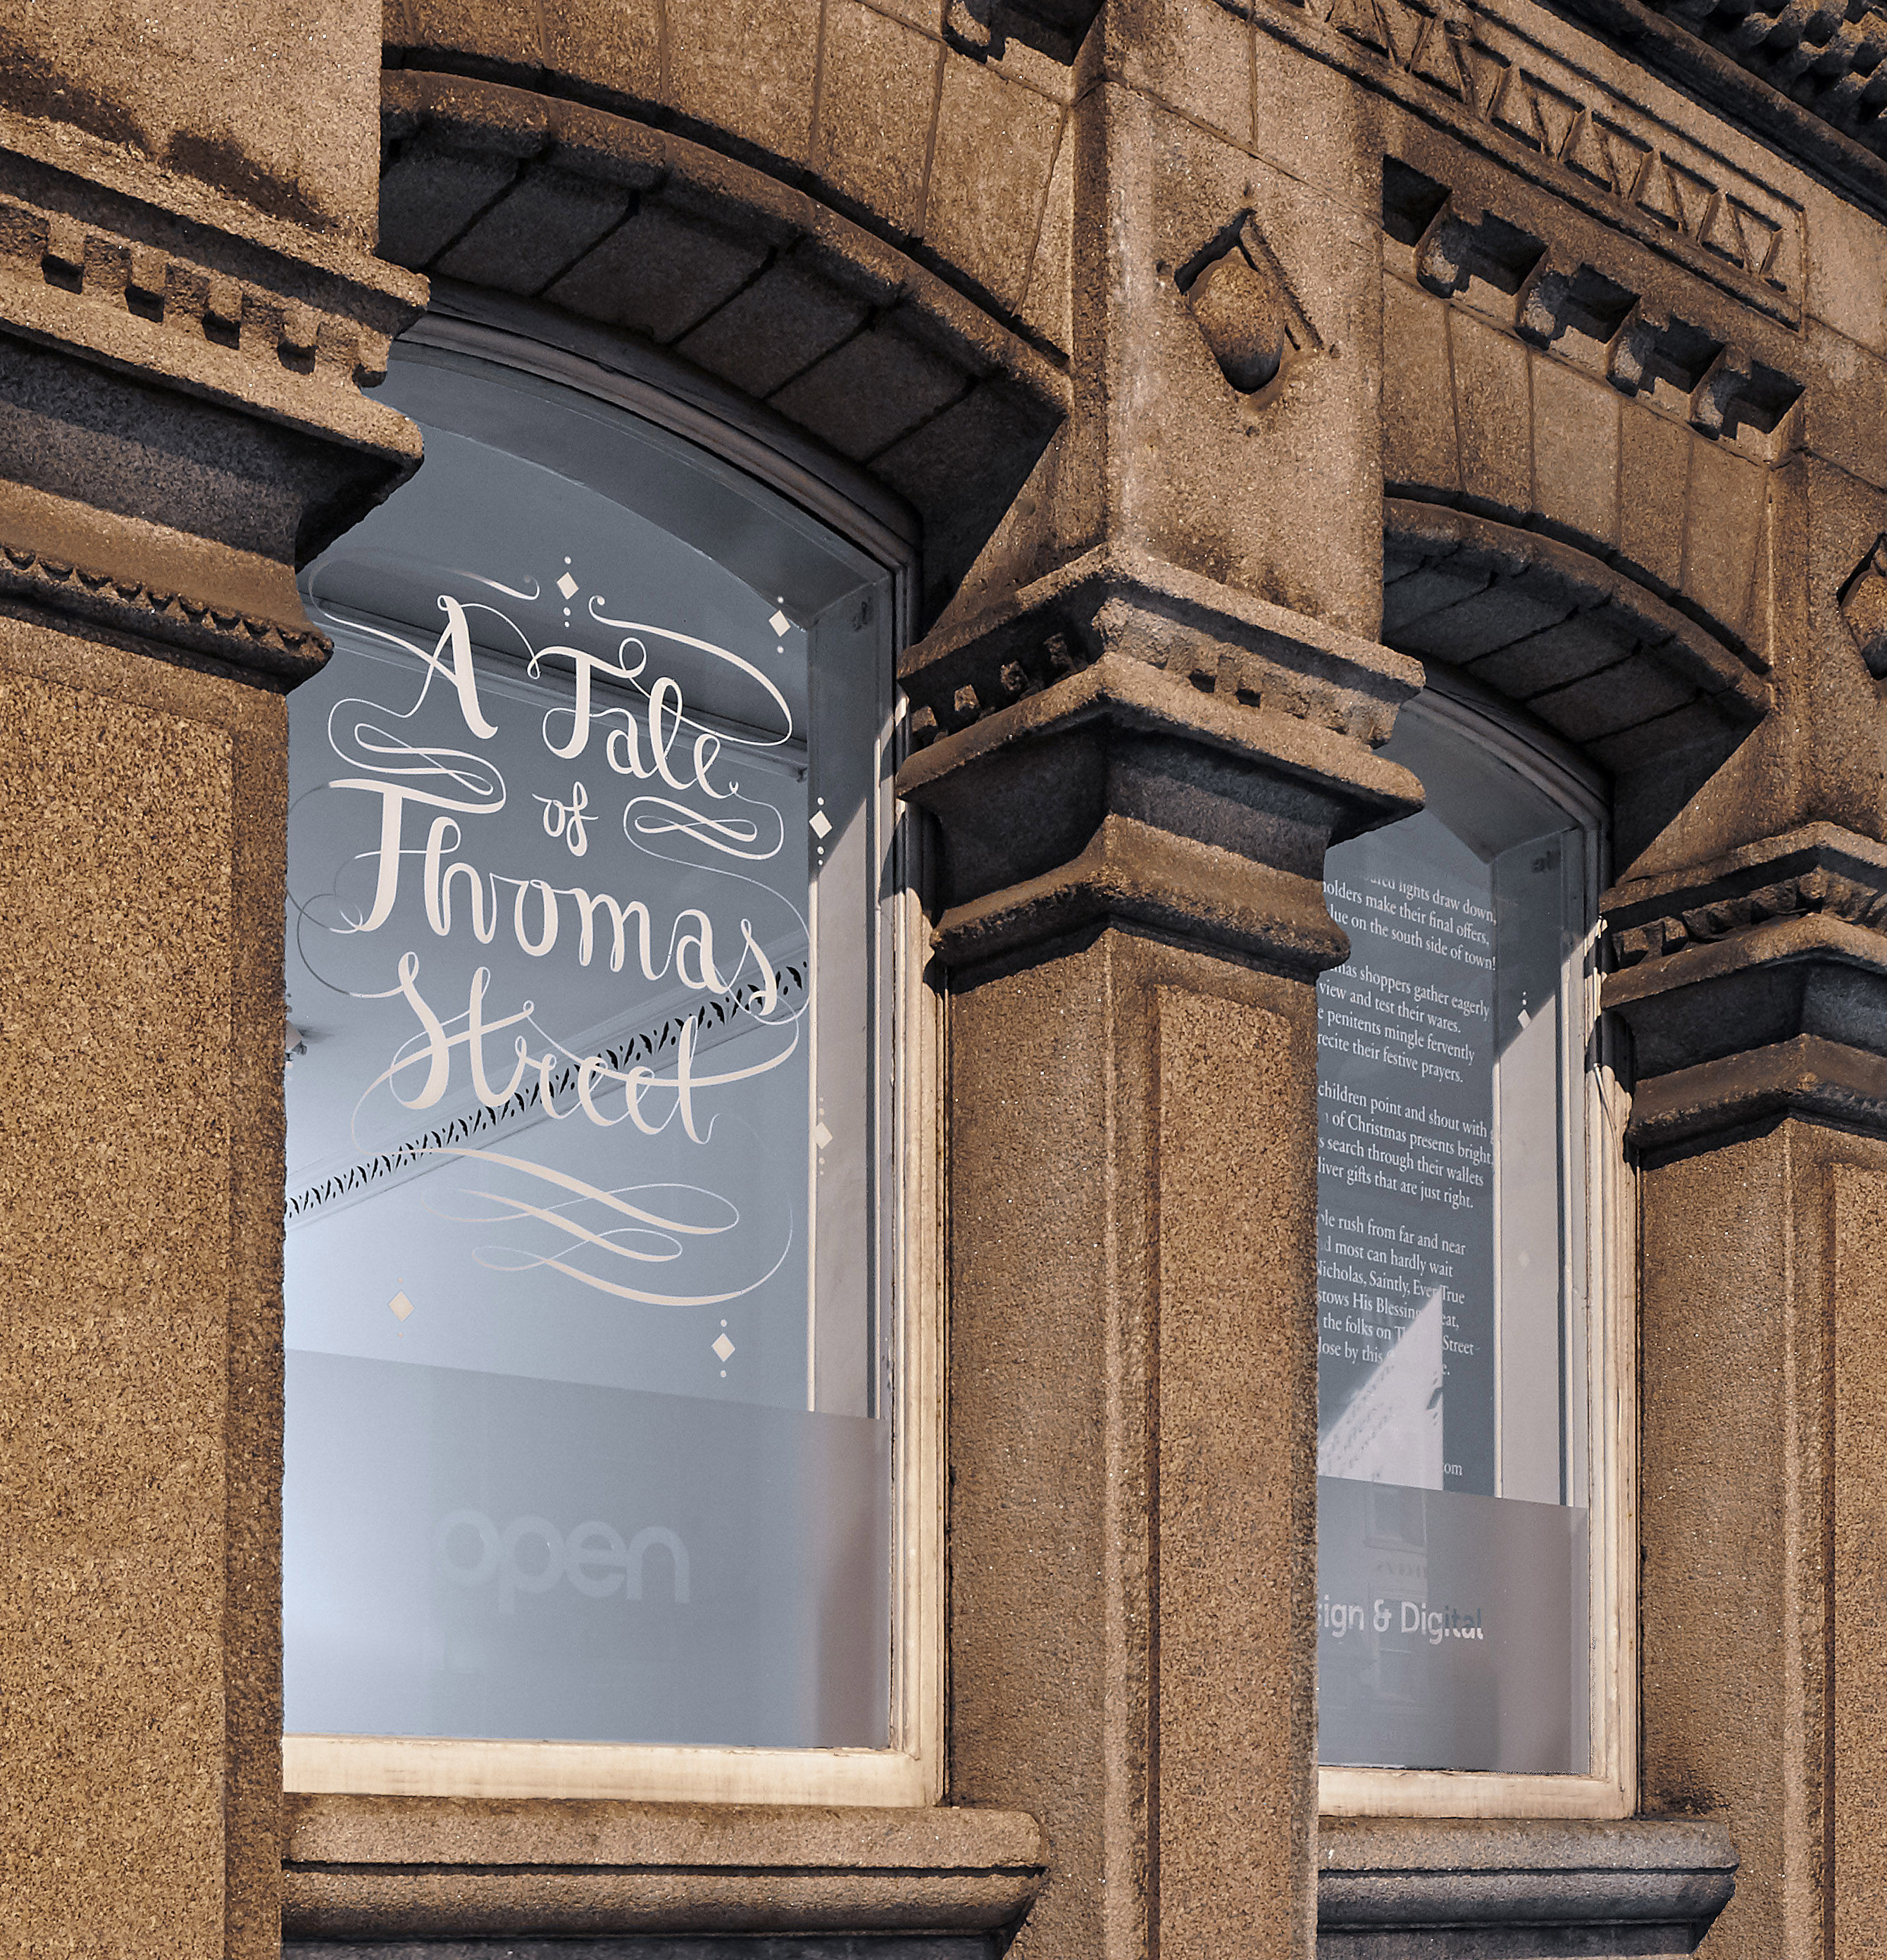 Cover image: A Tale of Thomas Street